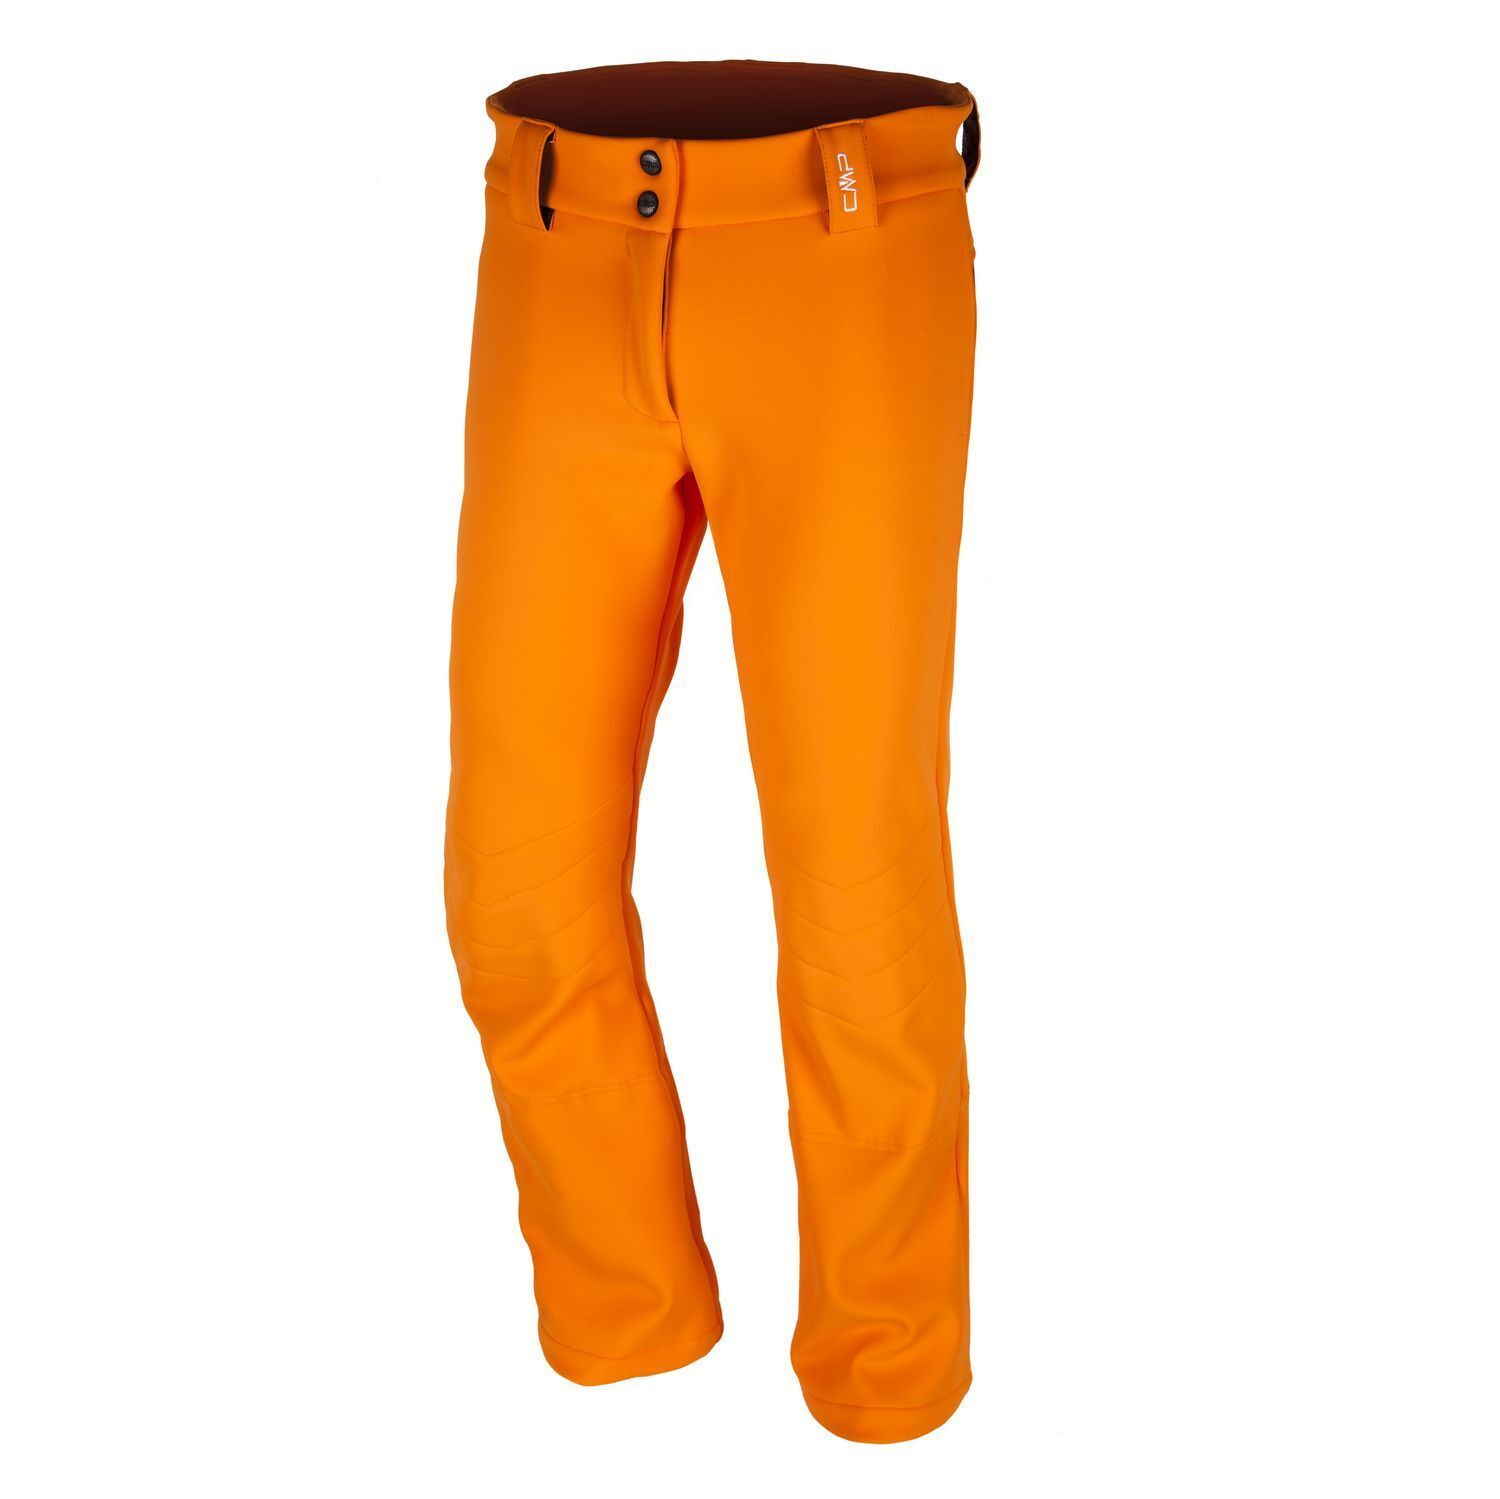 CMP Skihose Snowboardhose Winterhose orange Stretch ClimaPredect® warm